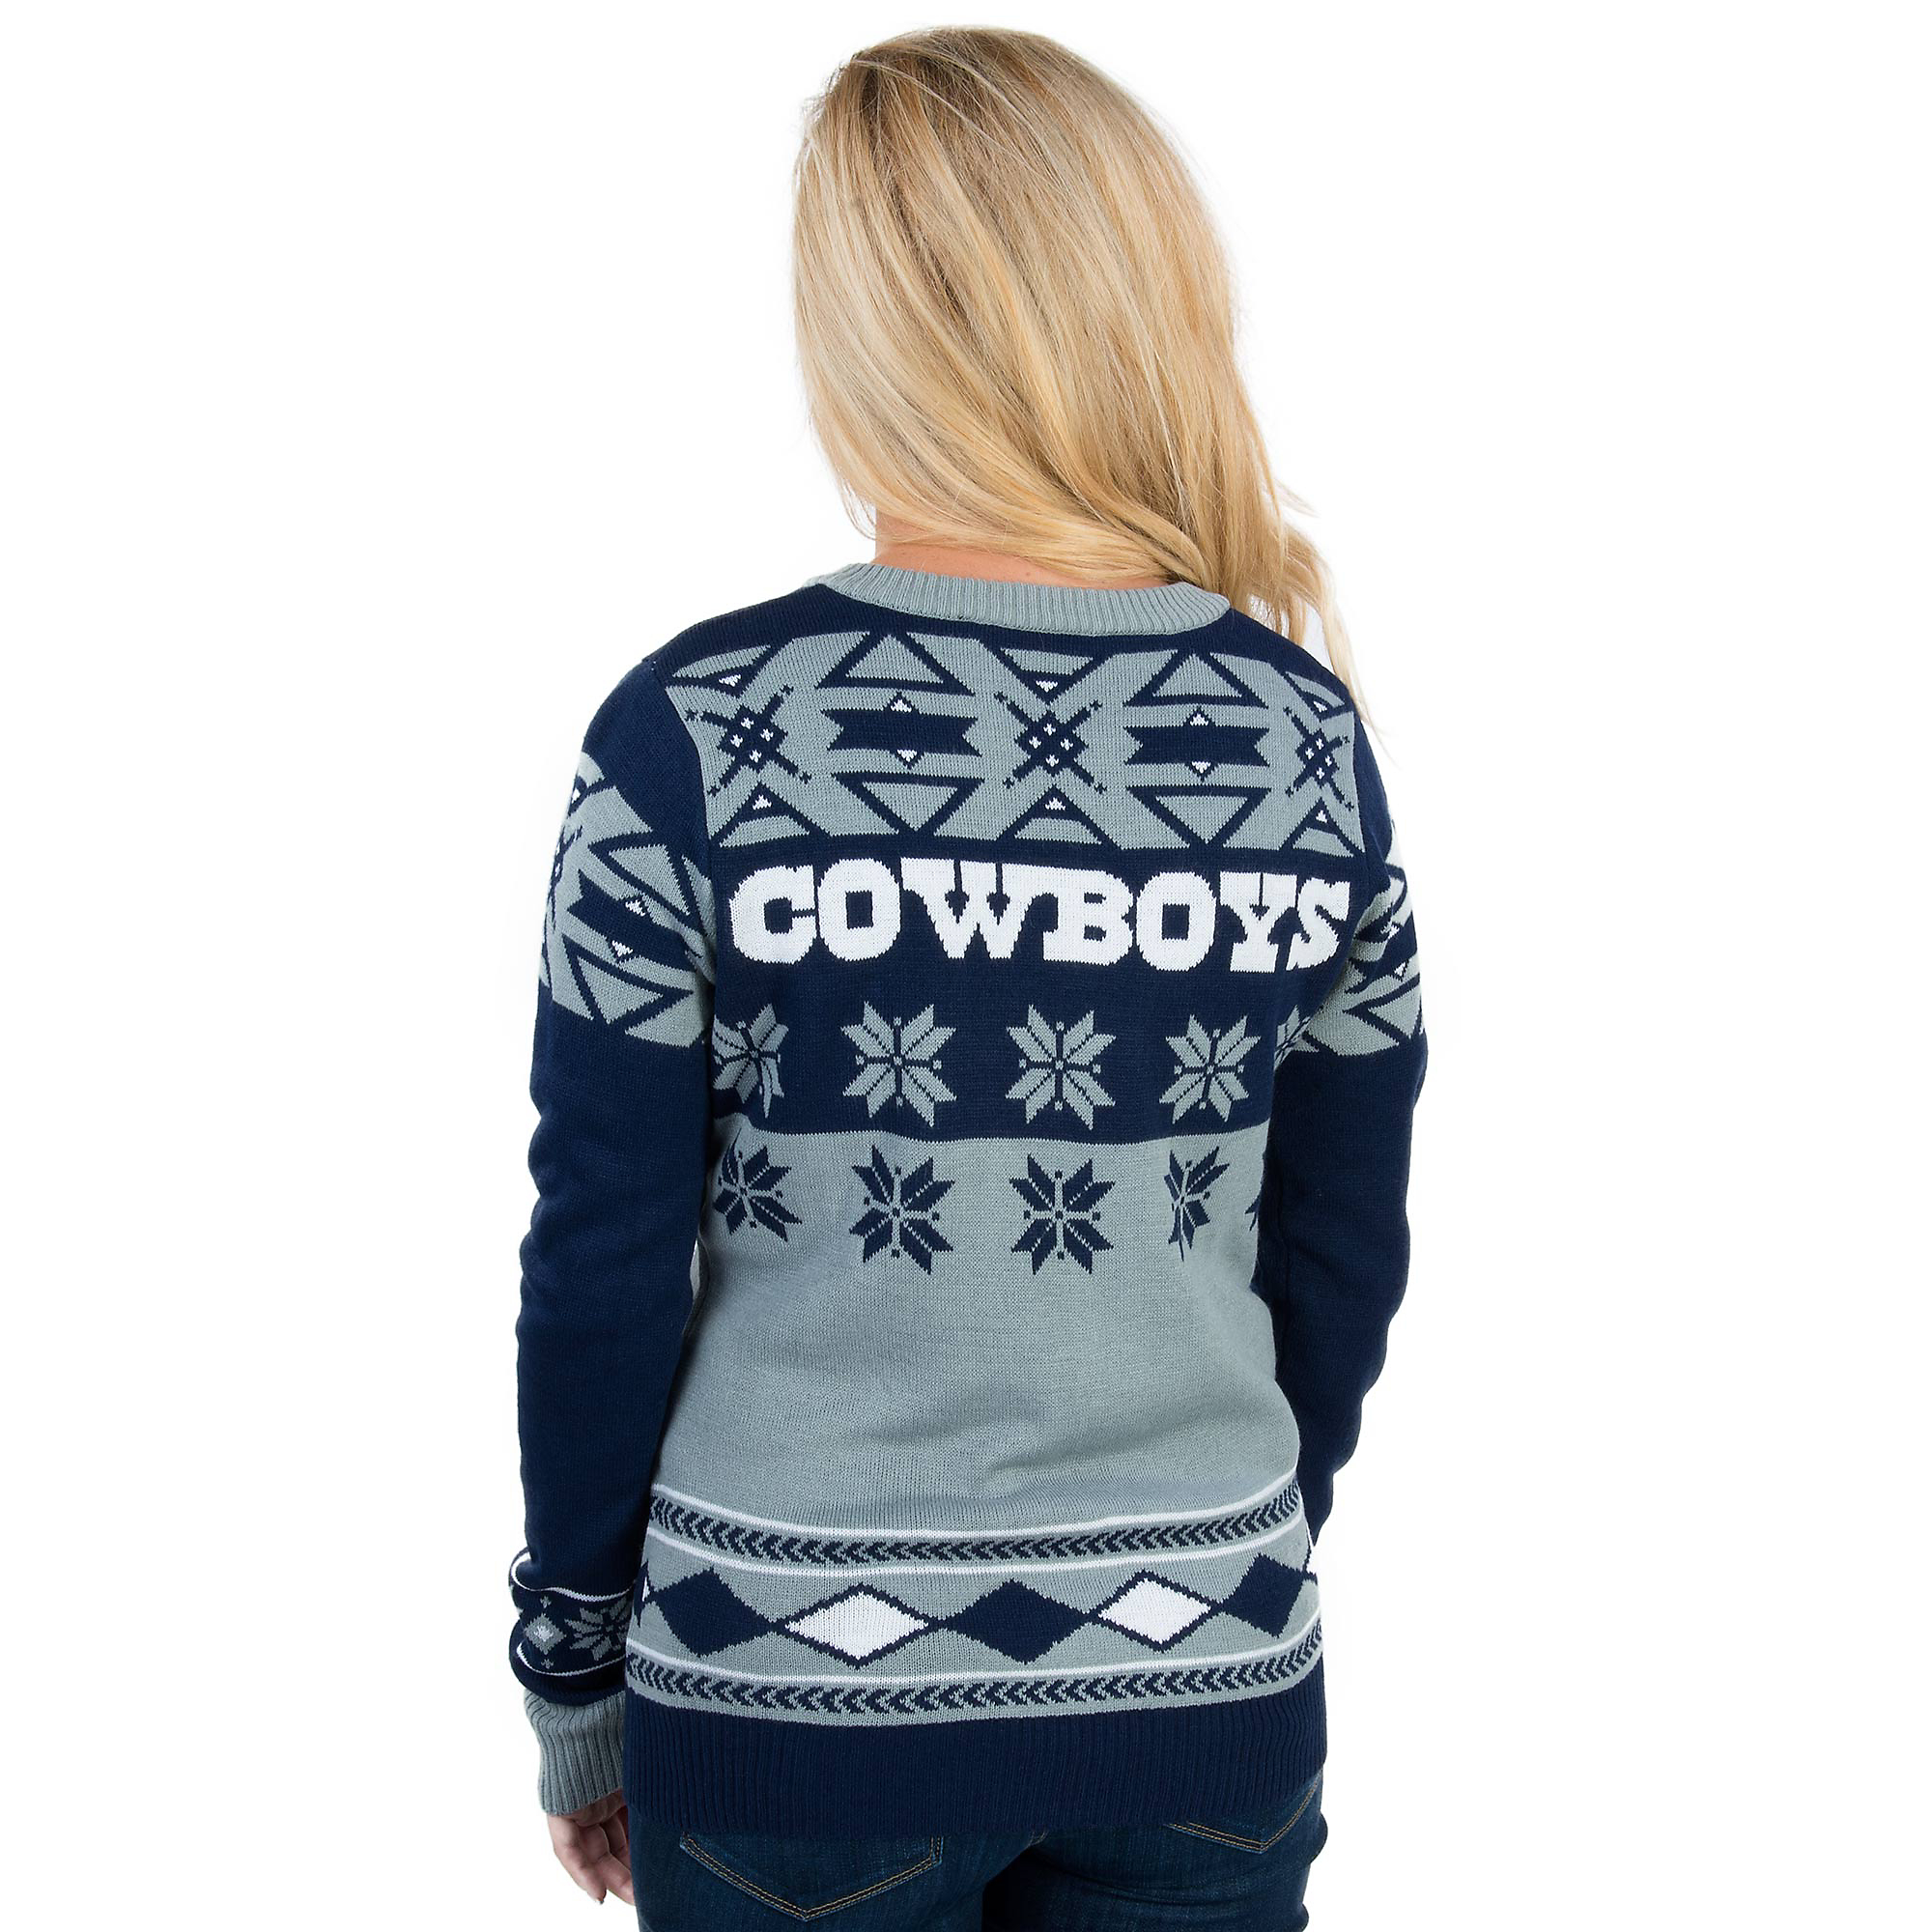 on sale 7c8d3 f6428 Dallas Cowboys Womens Ugly Sweater | Fans United